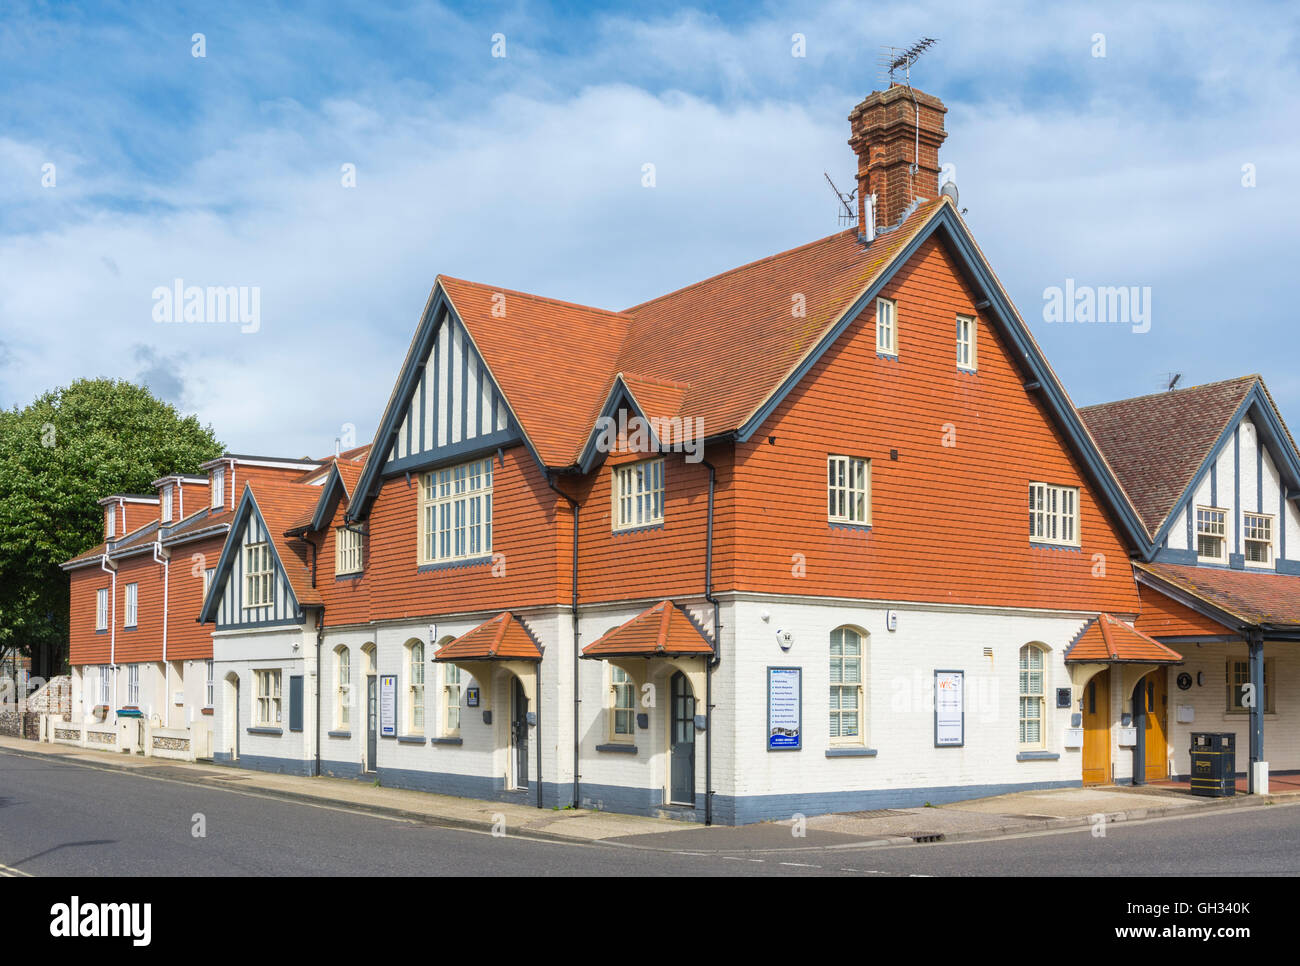 Gratwicke House, modern converted offices in Littlehampton, West Sussex, England, UK. - Stock Image